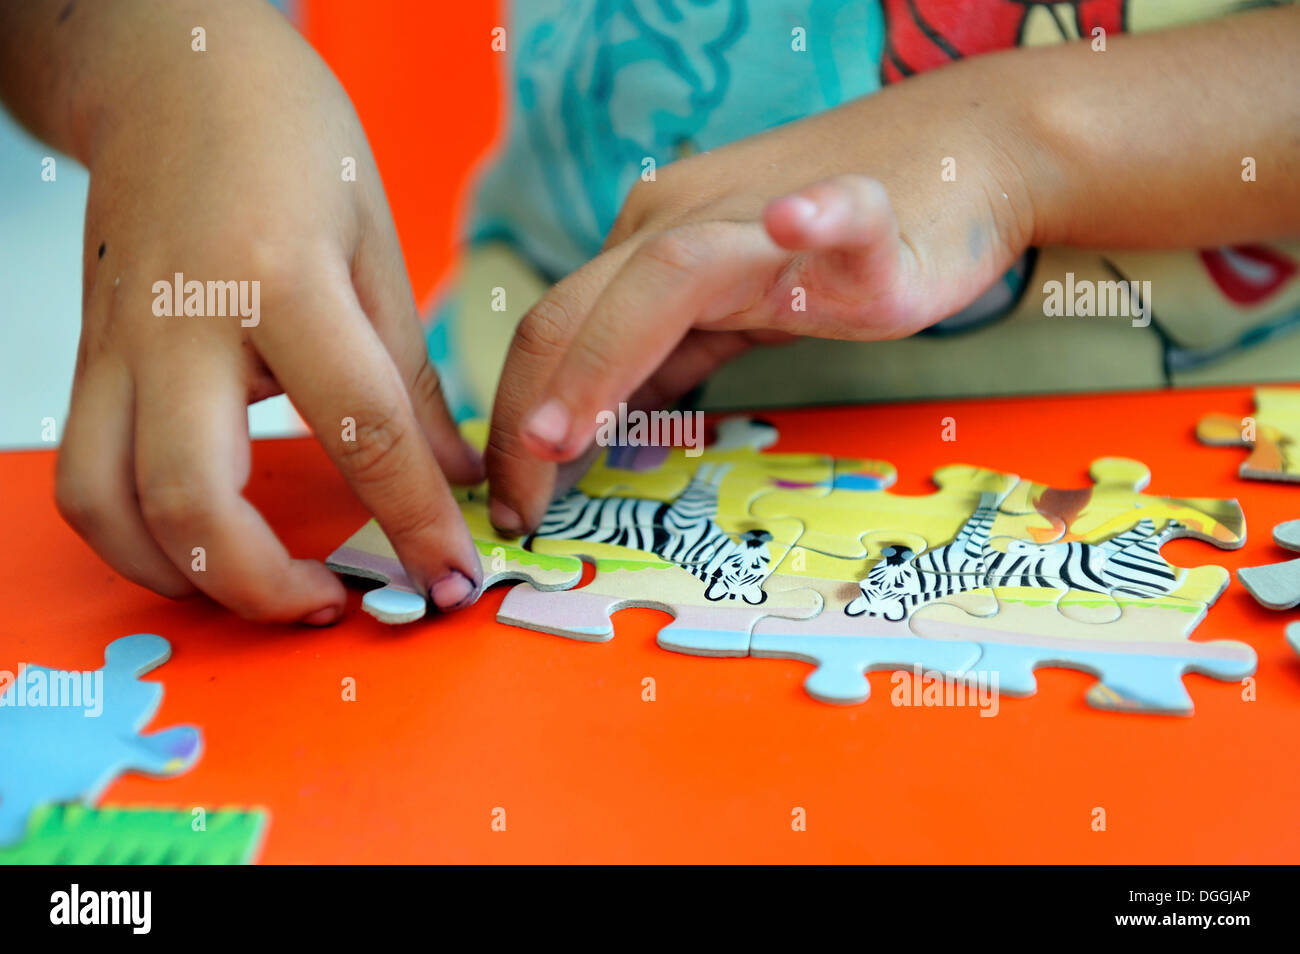 Children's hands doing a jigsaw puzzle with zebras, Queretaro, Mexico, North America, Latin America - Stock Image